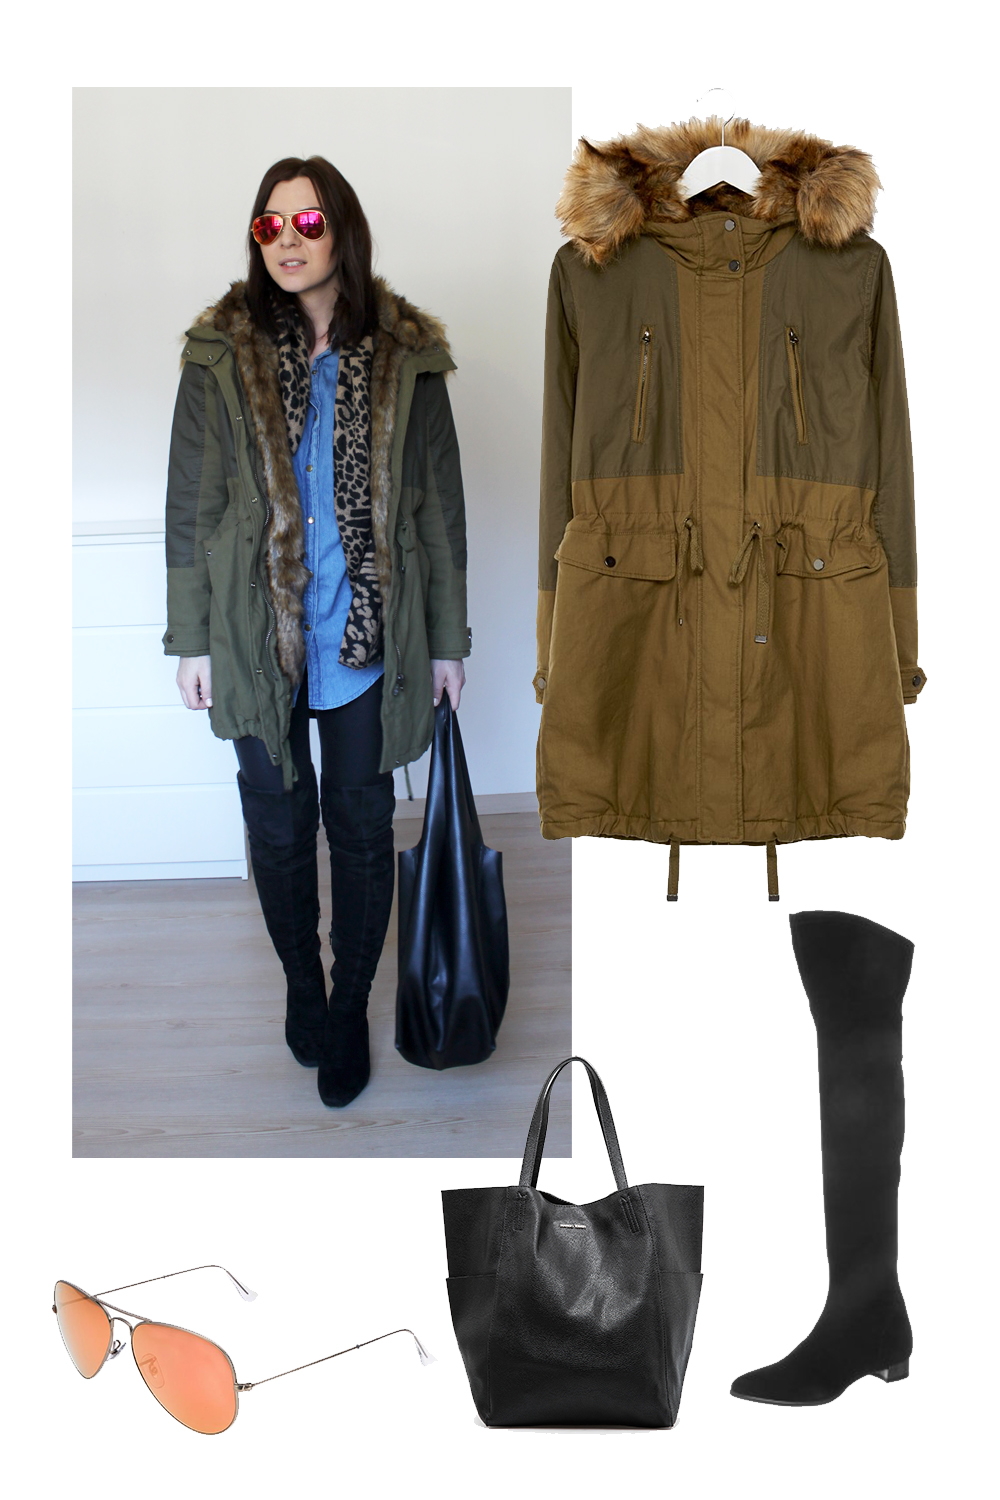 who is mocca, fashionblog tirol, fashionblog österreich, weekly outfit review, xl schal senfgelb rost asos, over knee stifle H&M Trend, over knee boots, beuteltasche, jeanshemd, parka topshop zalando khaki